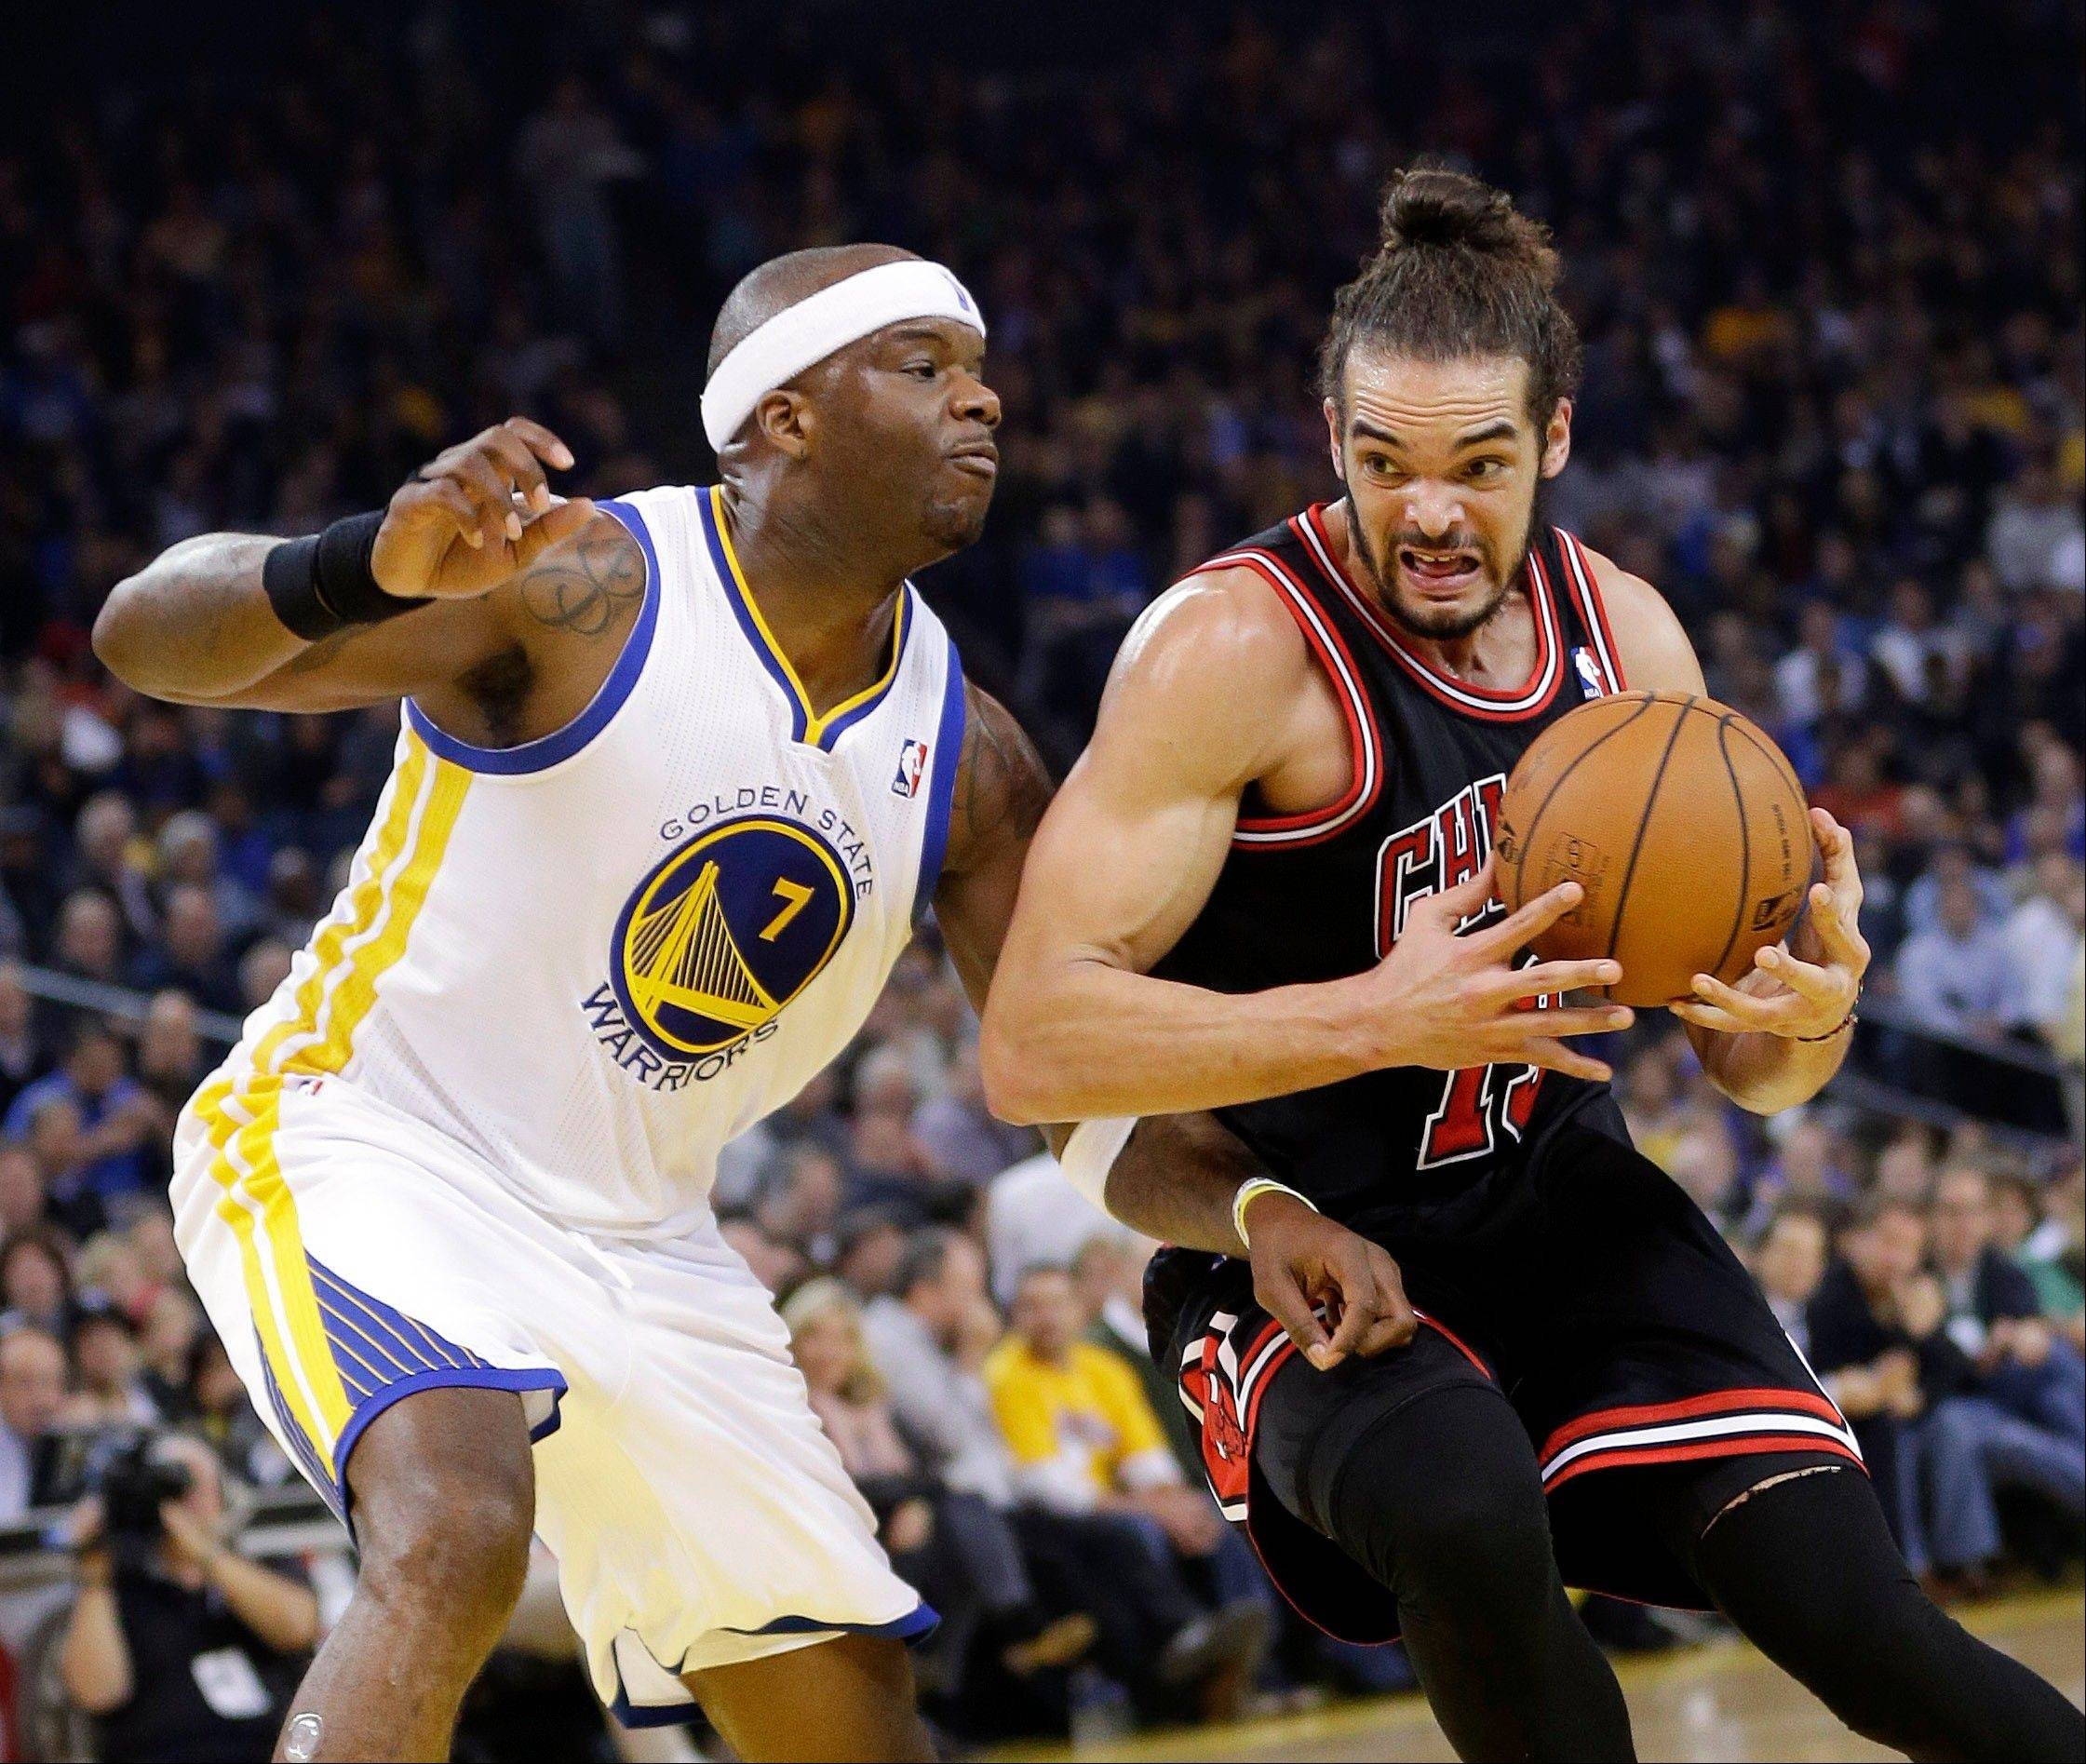 Associated Press The Bulls� Joakim Noah dribbles next to Golden State Warriors� Jermaine O�Neal during the first half of the game Thursday in Oakland, Calif.